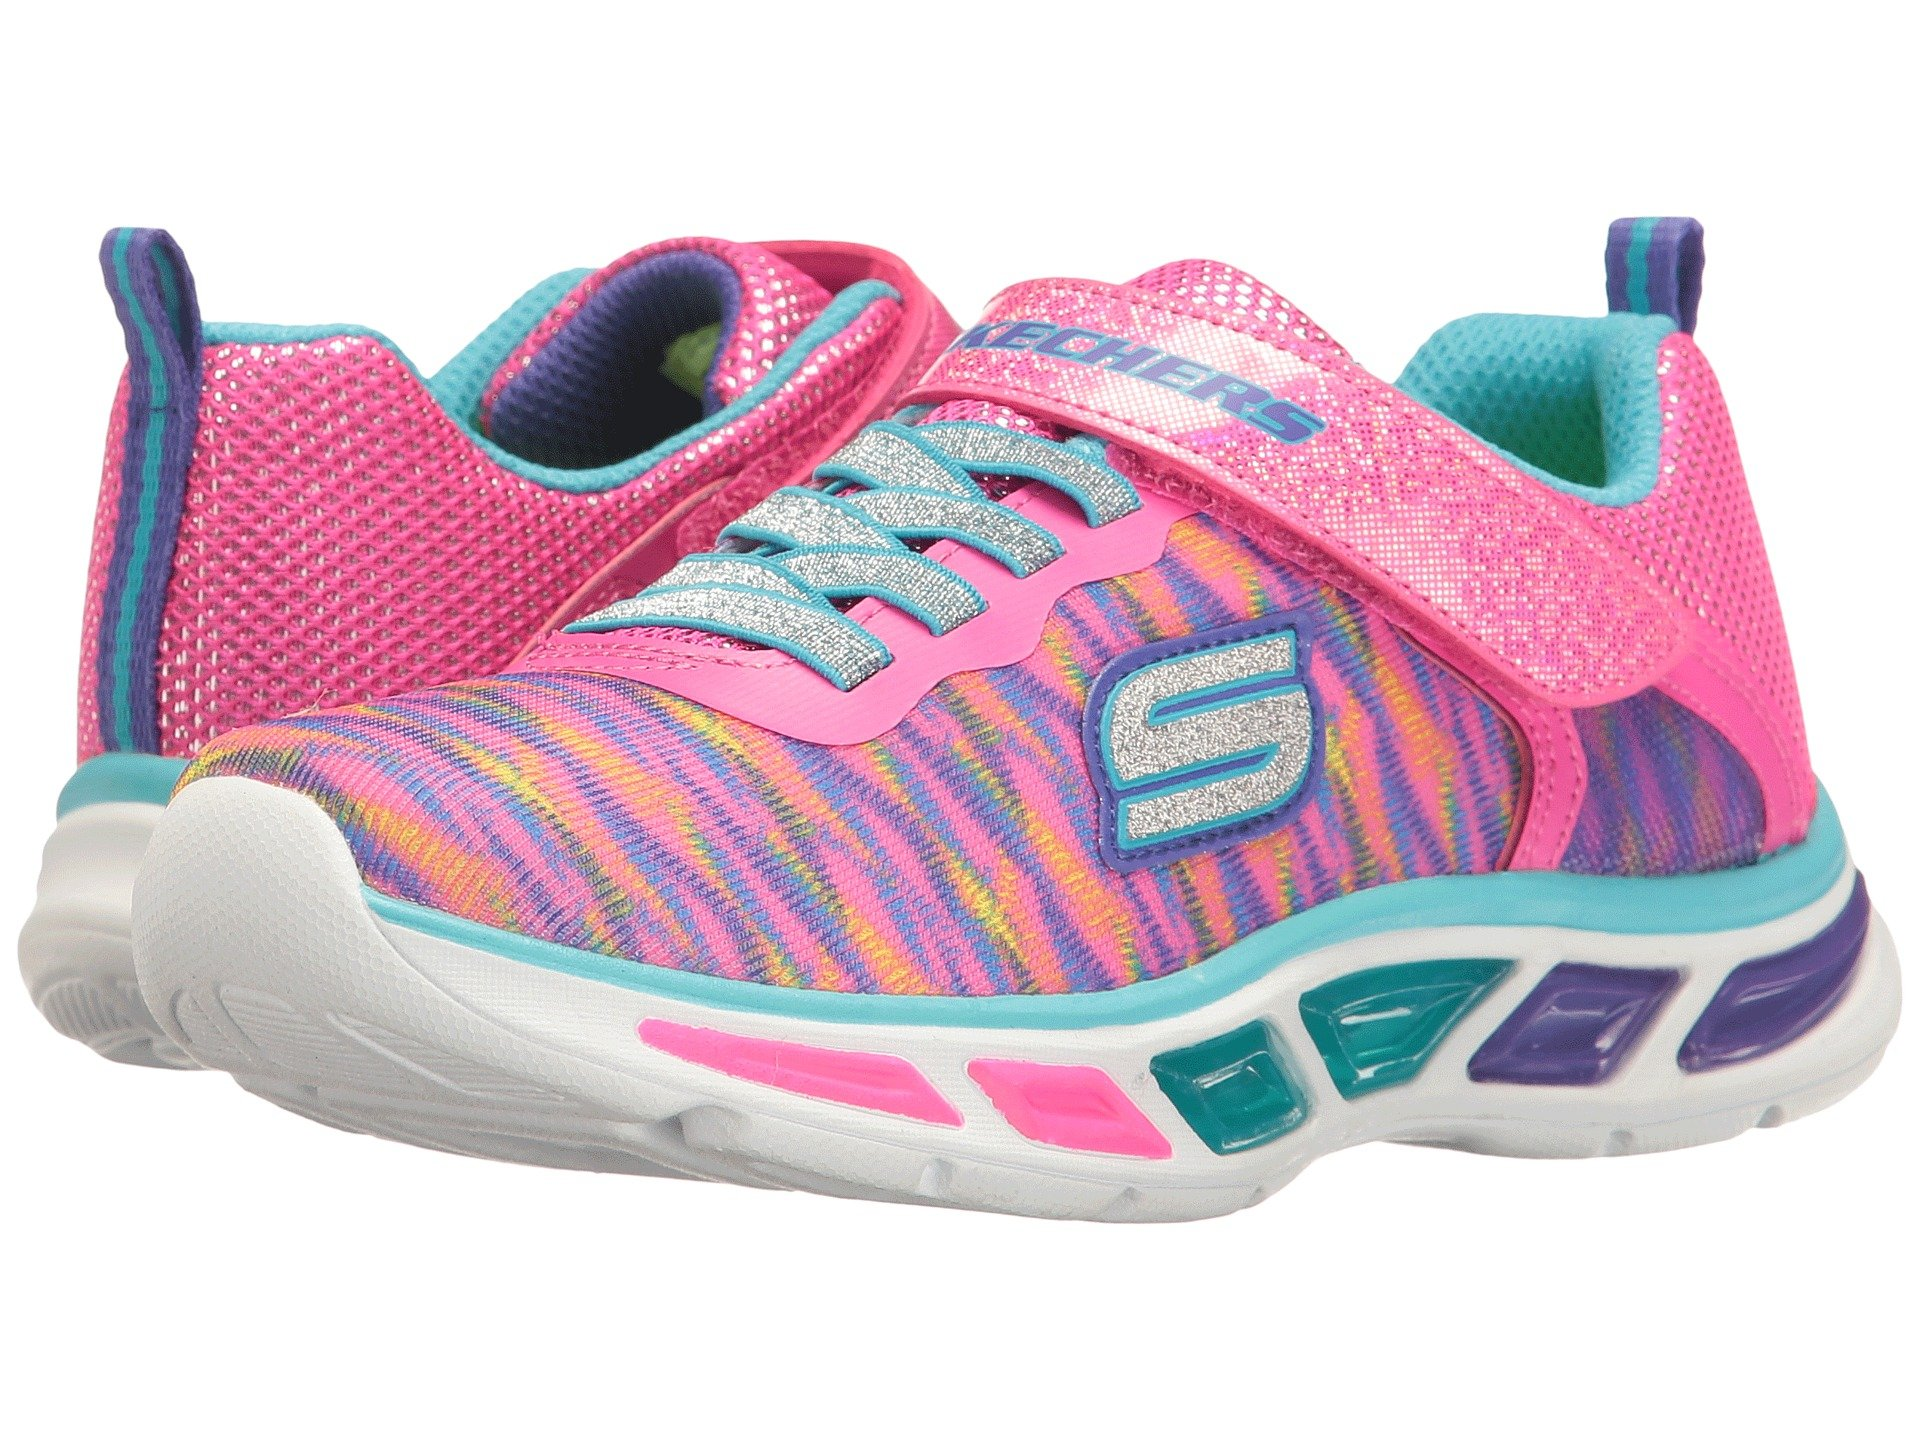 SKECHERS KIDS Lite Beams 10767L Lights (Little Kid/Big Kid) At Zappos.com